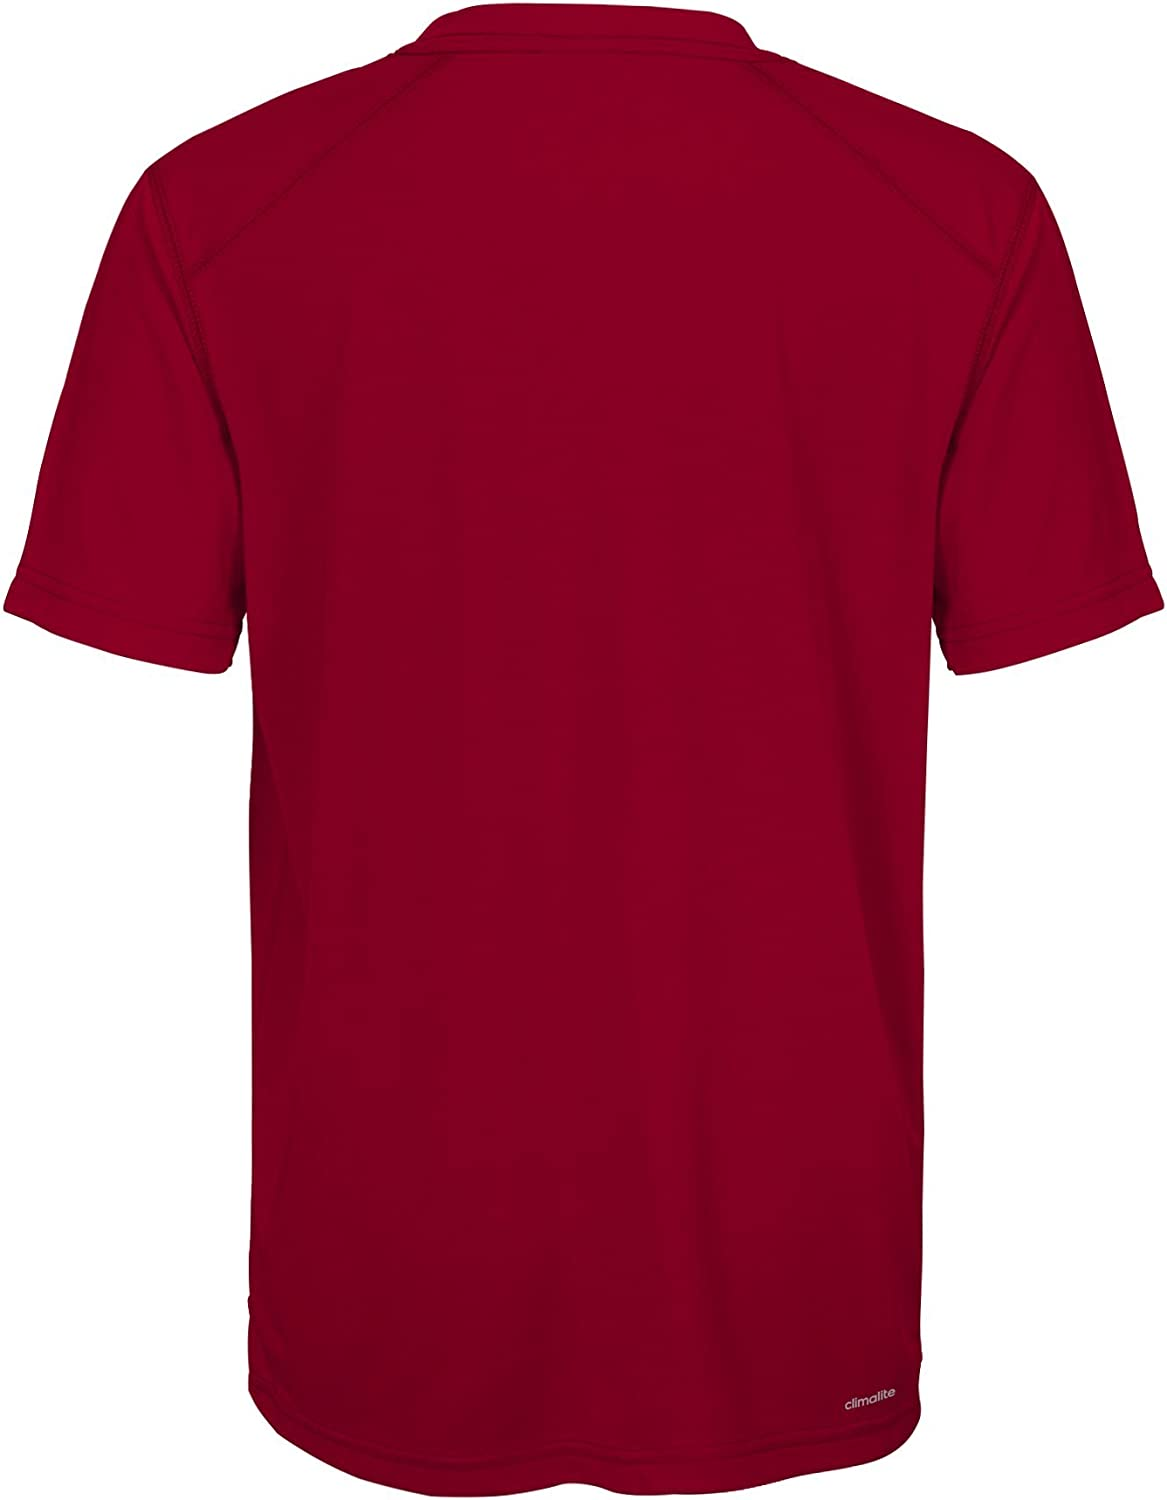 X-Large MLS by Outerstuff Youth Boys Short Sleeve Fan Nation Tee Victory Red 18